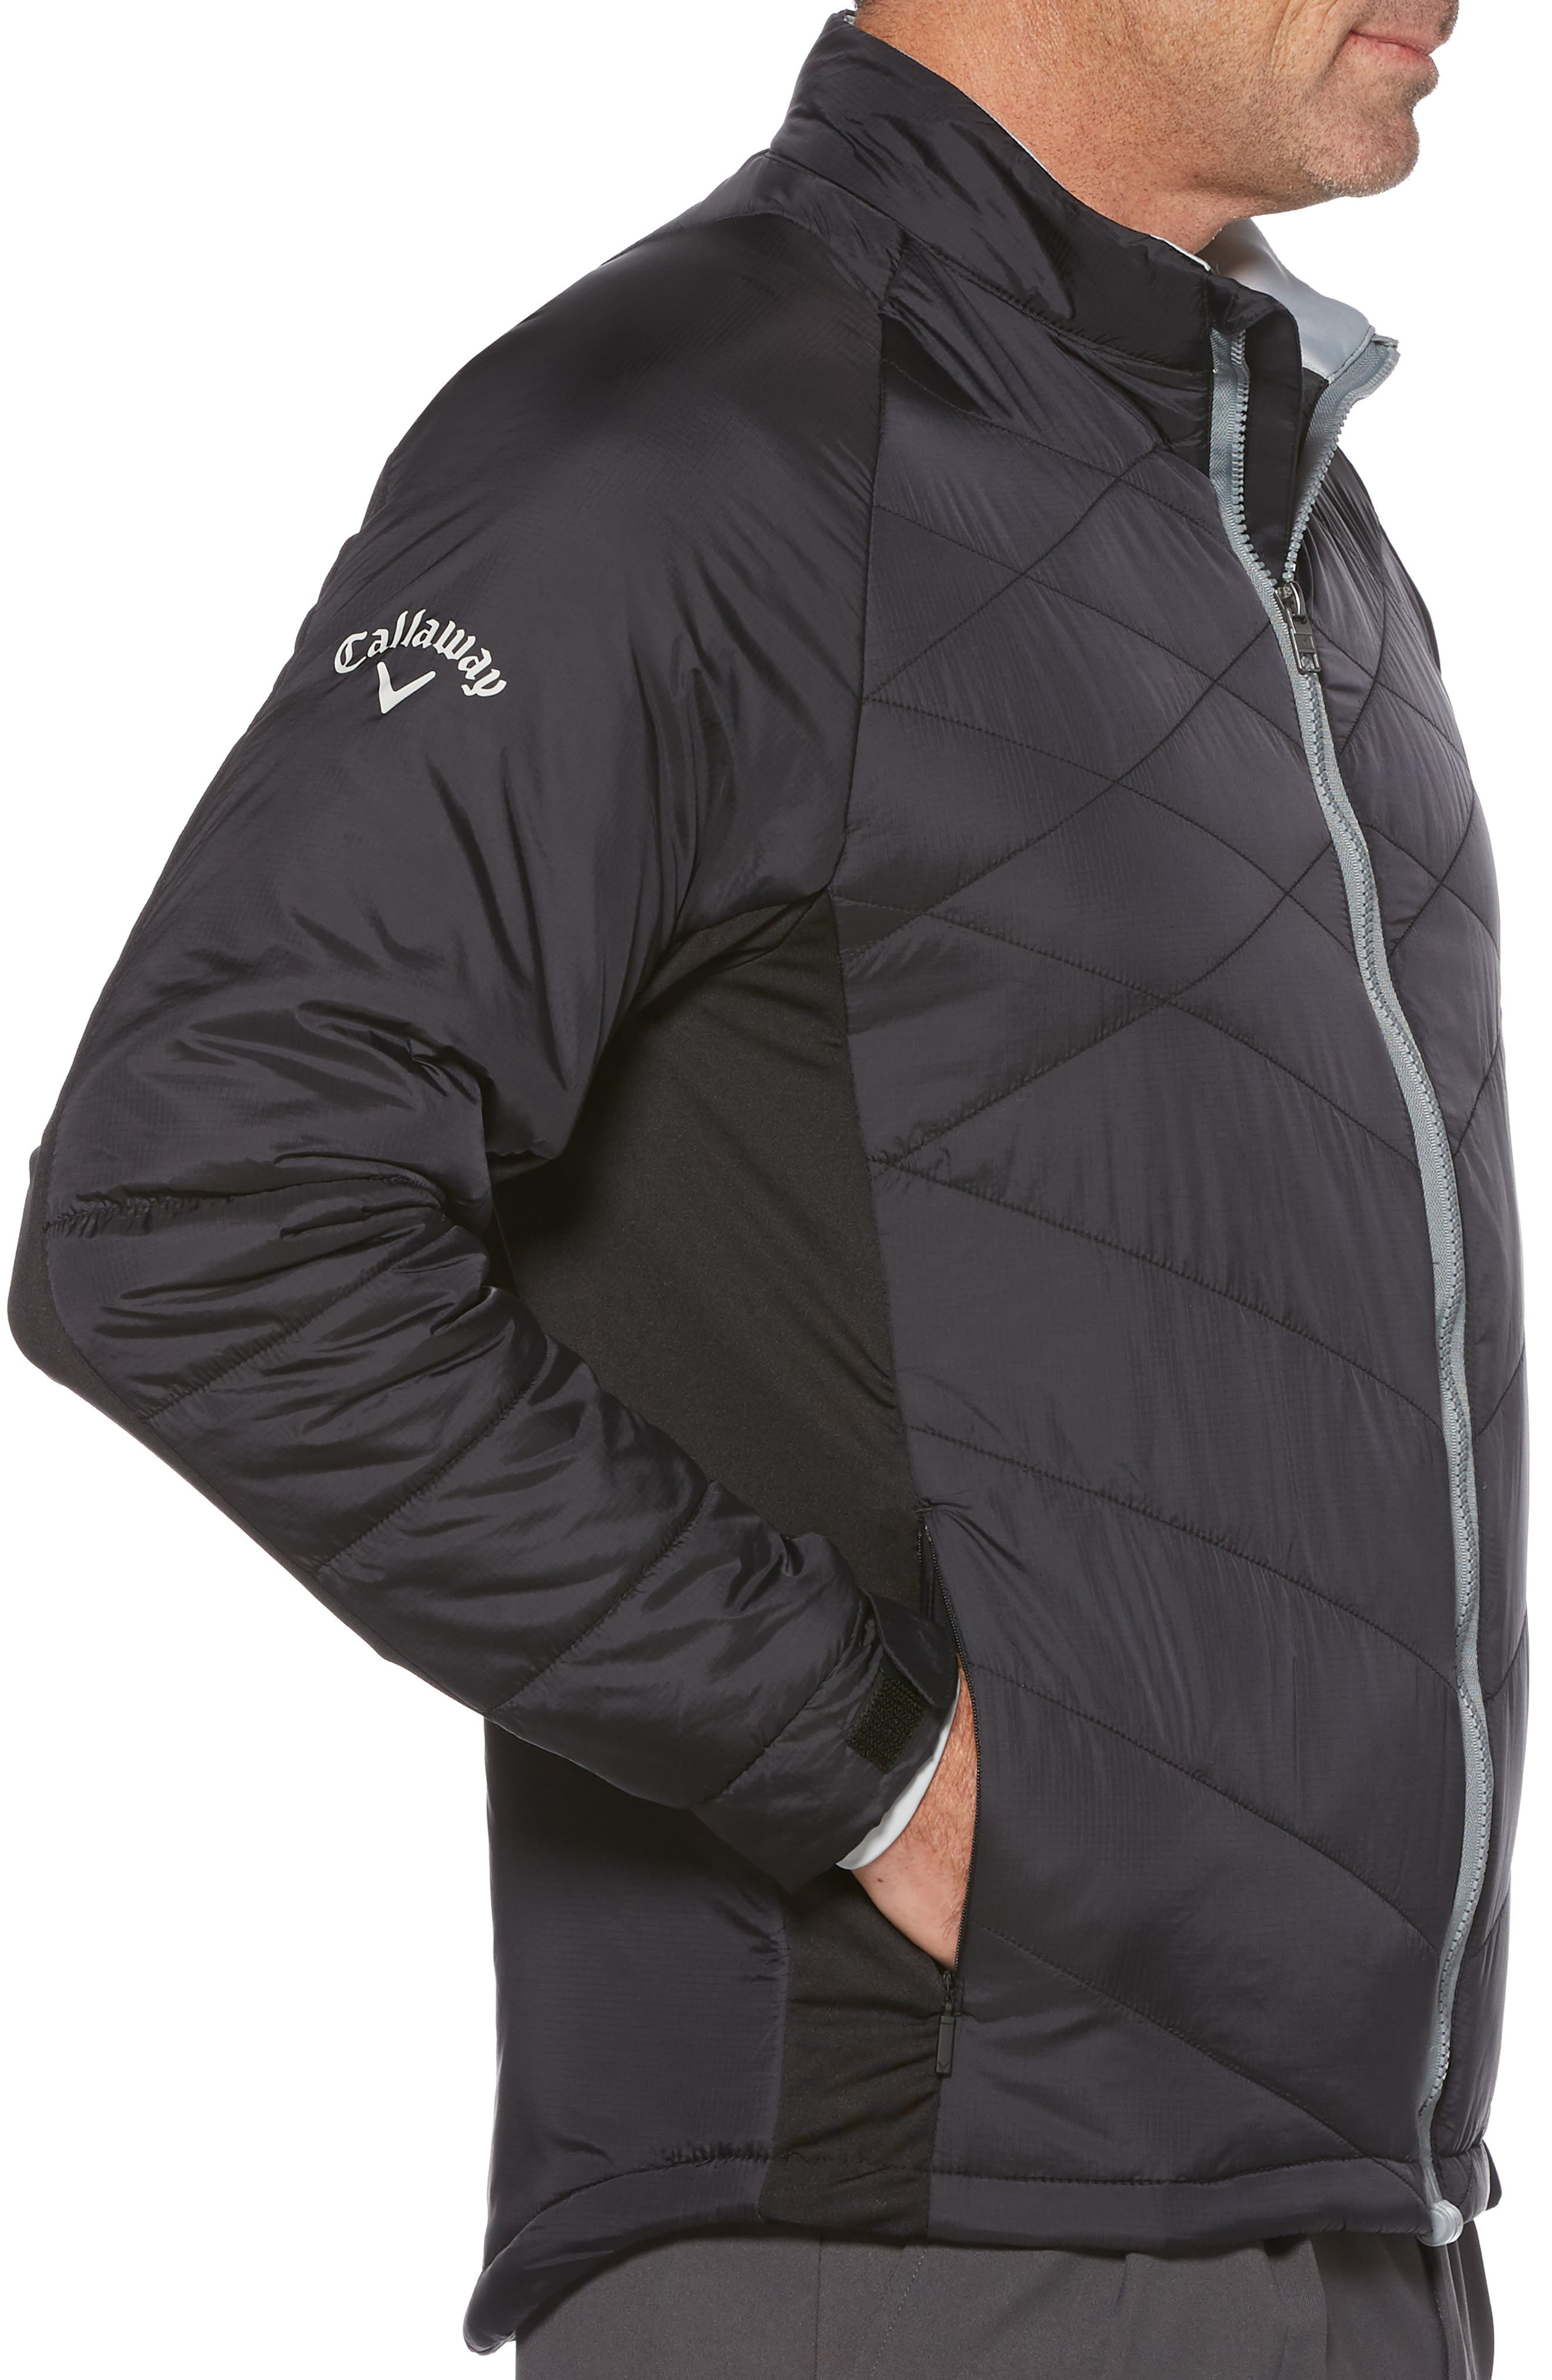 Performance Puffer Jacket,                             Alternate thumbnail 3, color,                             002